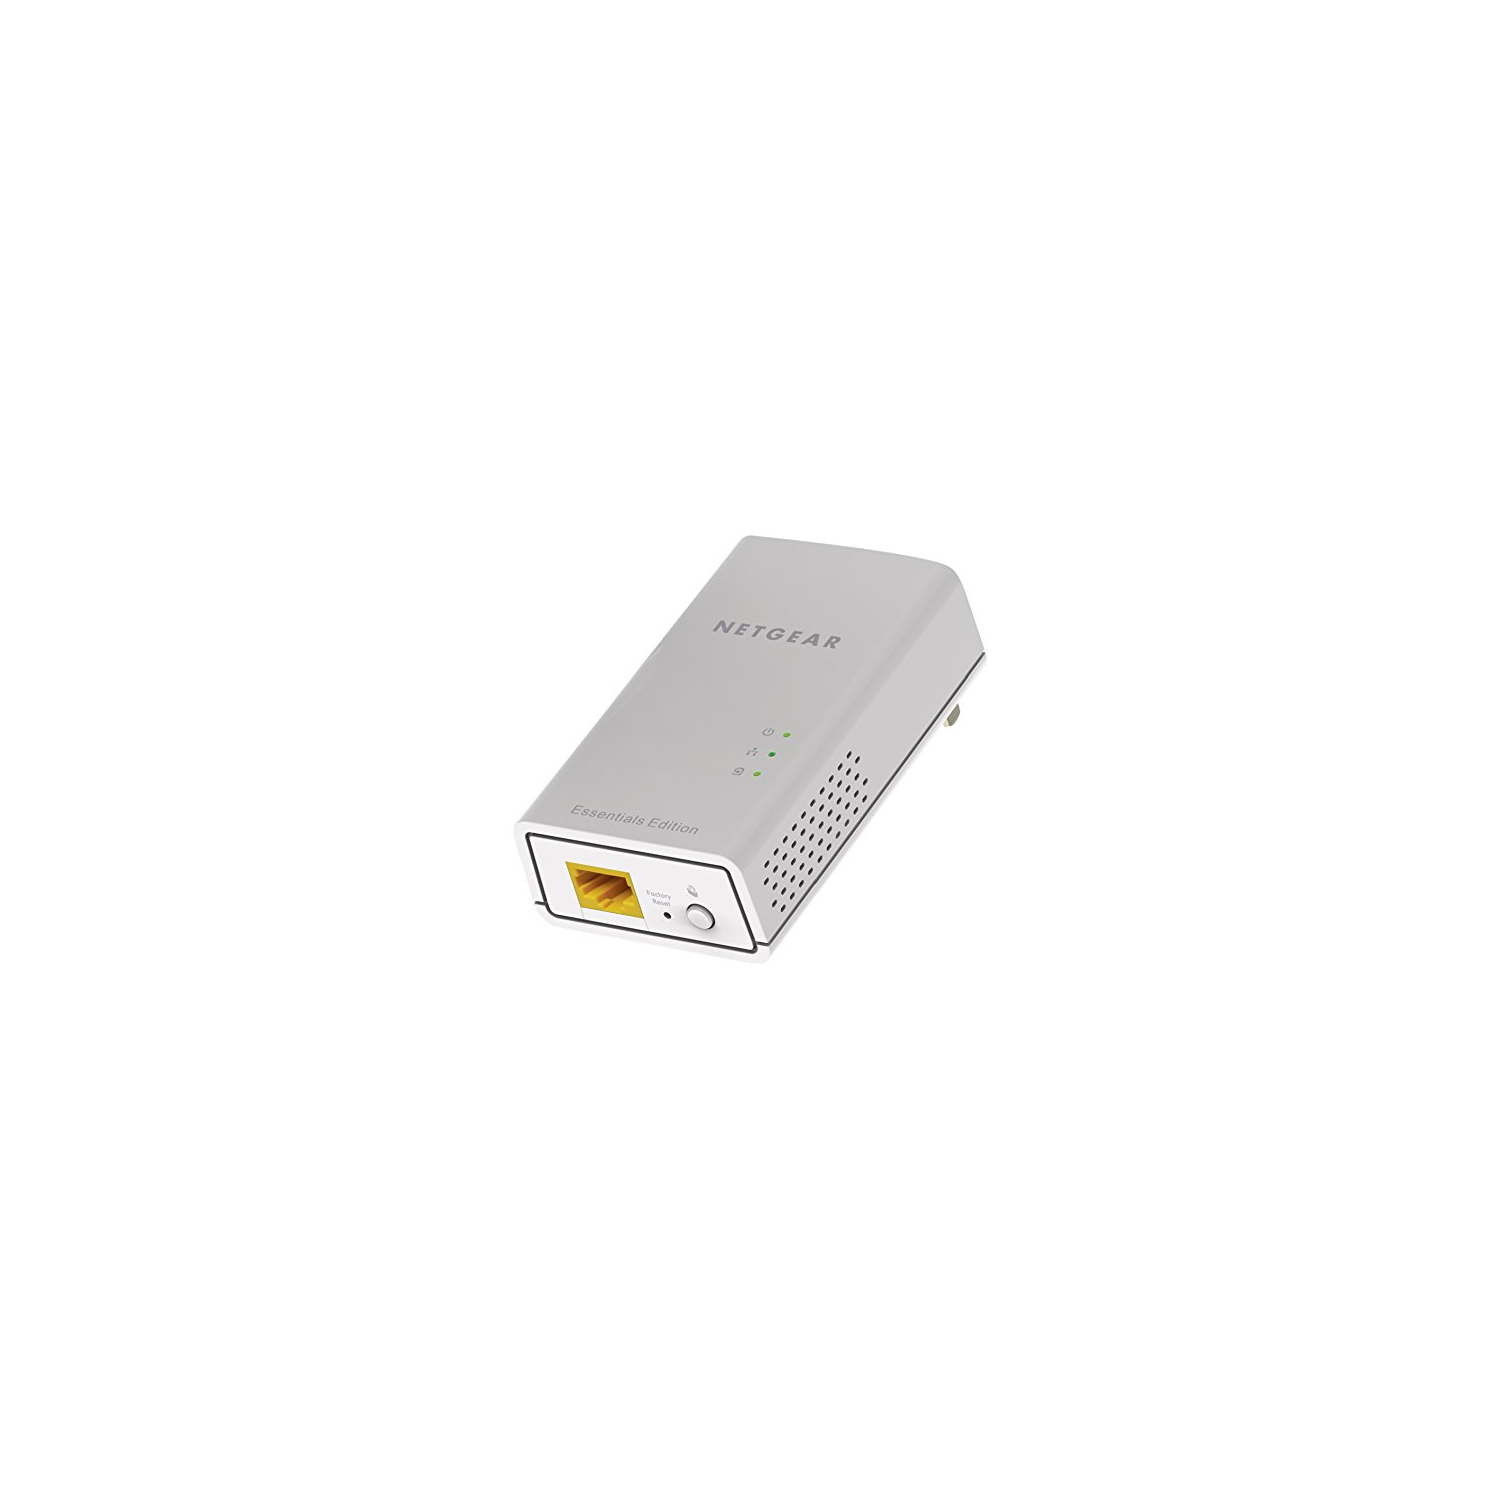 Netgear Powerline Adapters 1000 Mbps 1 Gigabit Port - PL1000